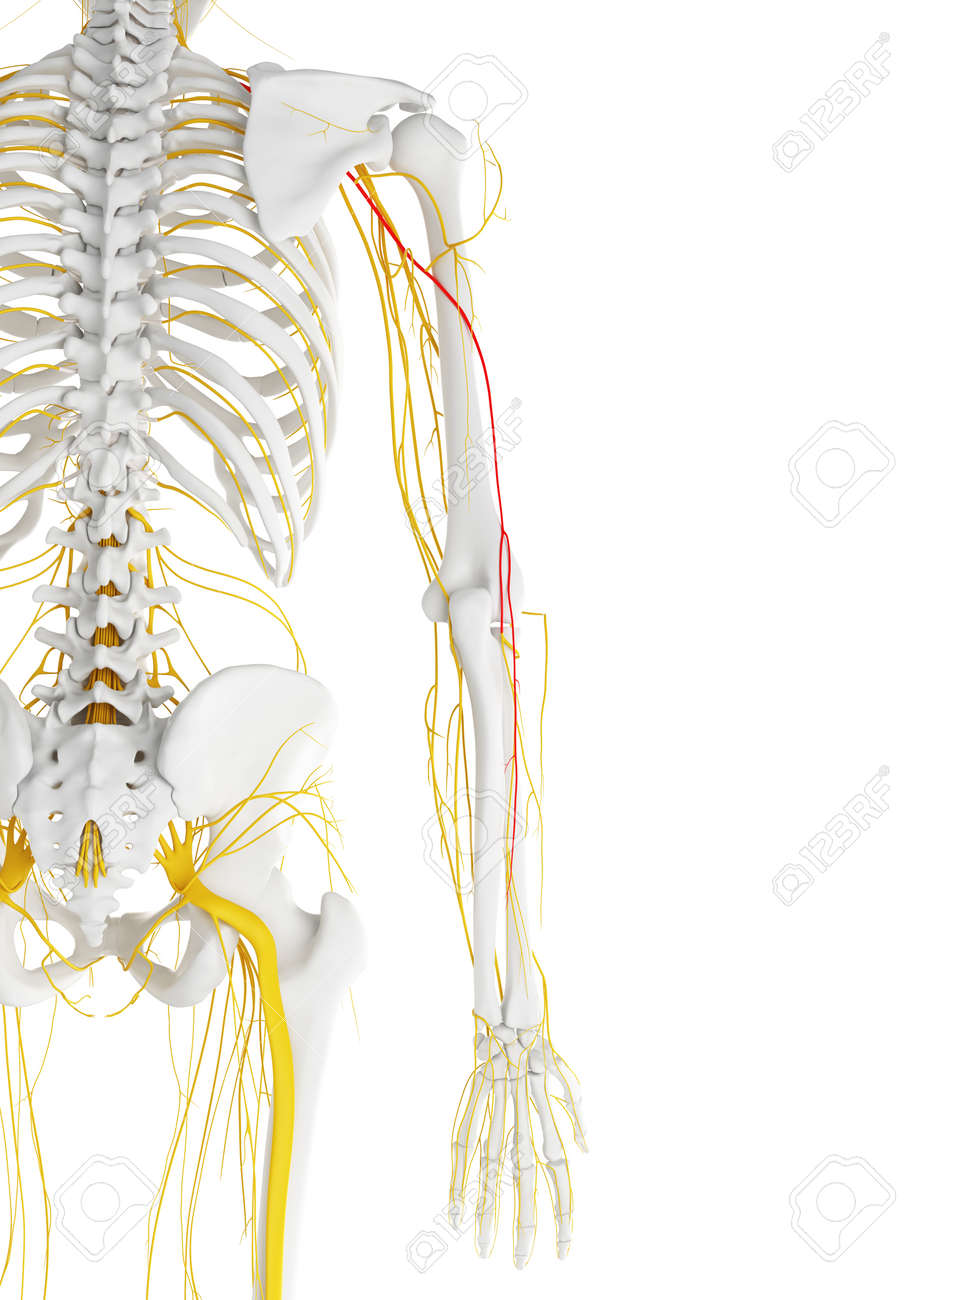 radial nerve diagram sony cdx gt450u wiring 3d rendered medically accurate illustration of the stock 87650925